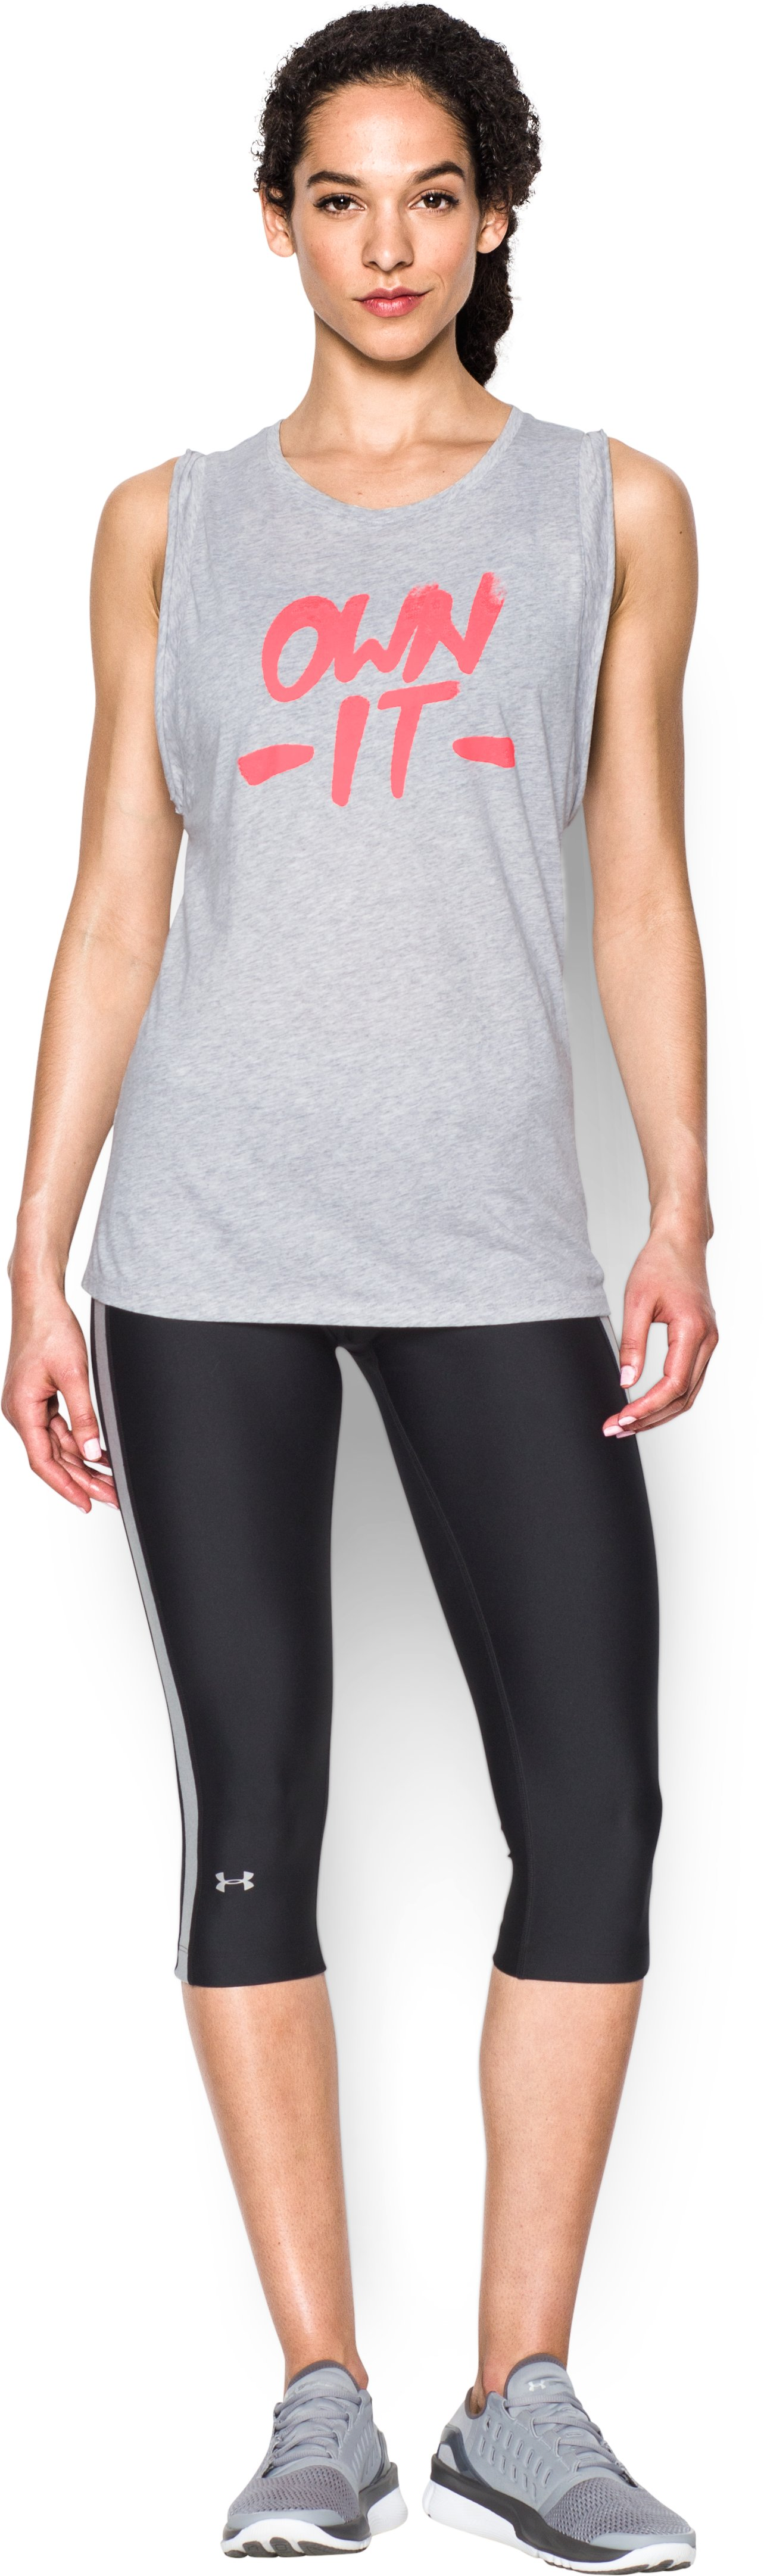 Women's UA Own it Muscle Tank , AIR FORCE GRAY HEATHER